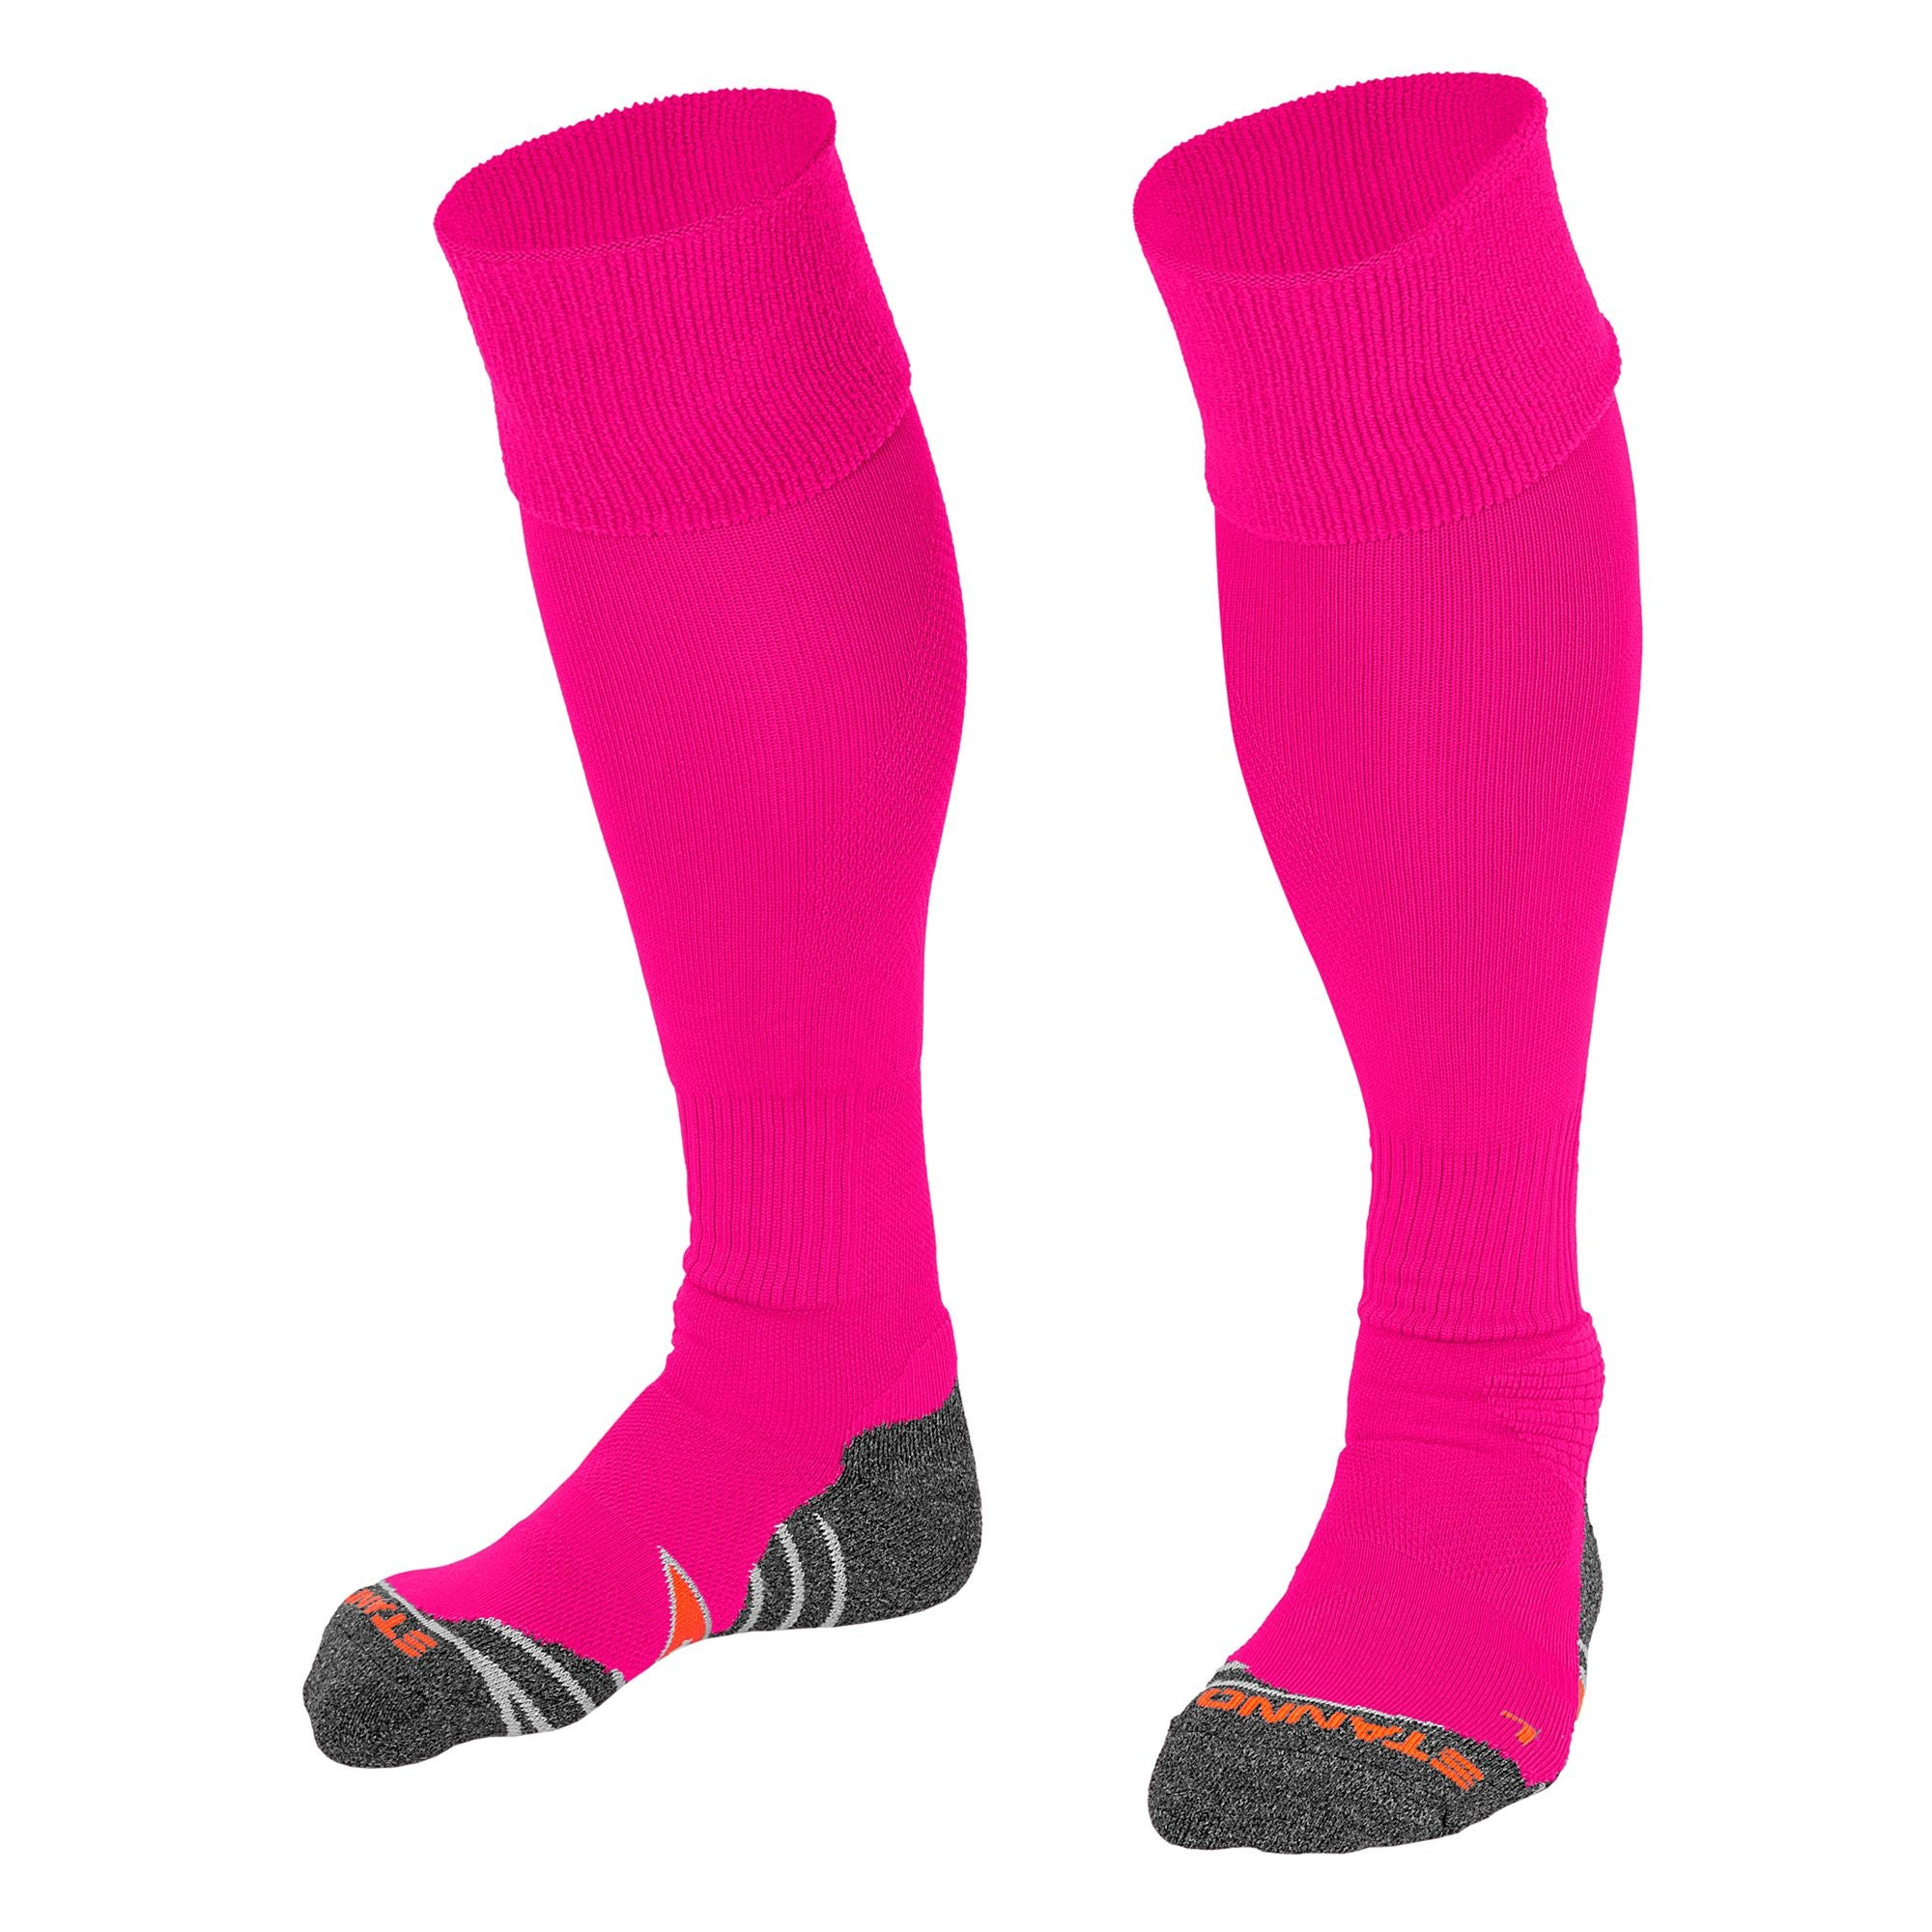 Stanno Uni Sock II football sock in pink with grey, white and orange sole